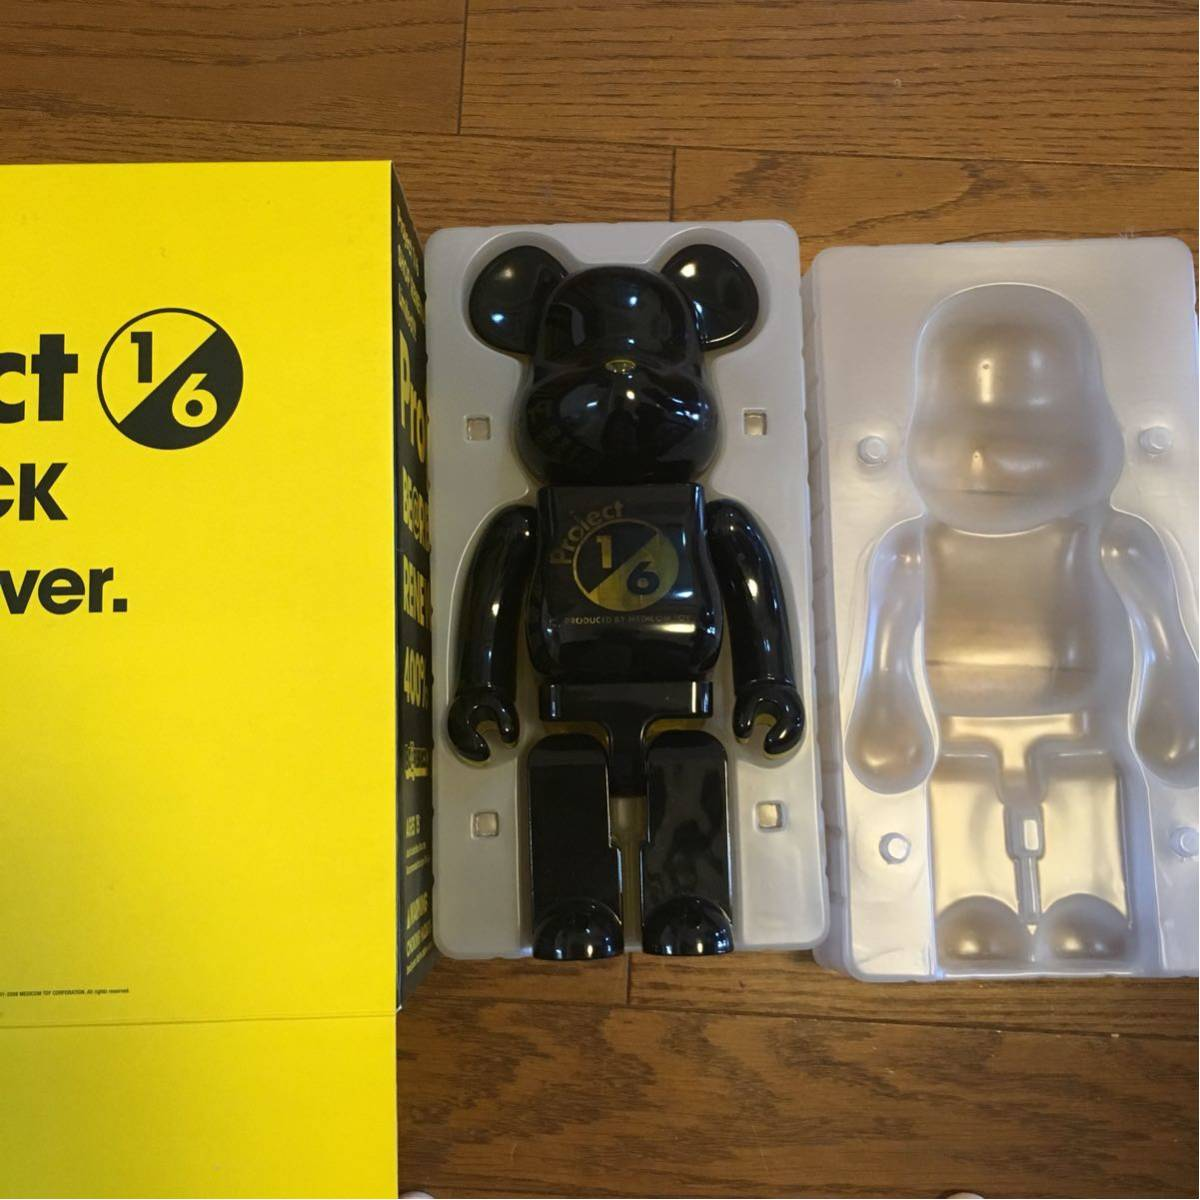 BE@RBRICK Project1/6 BE@RBRICK RENEWAL ver 400% ベアブリック 1/6計画 1/6プロジェクト リニューアル_画像3